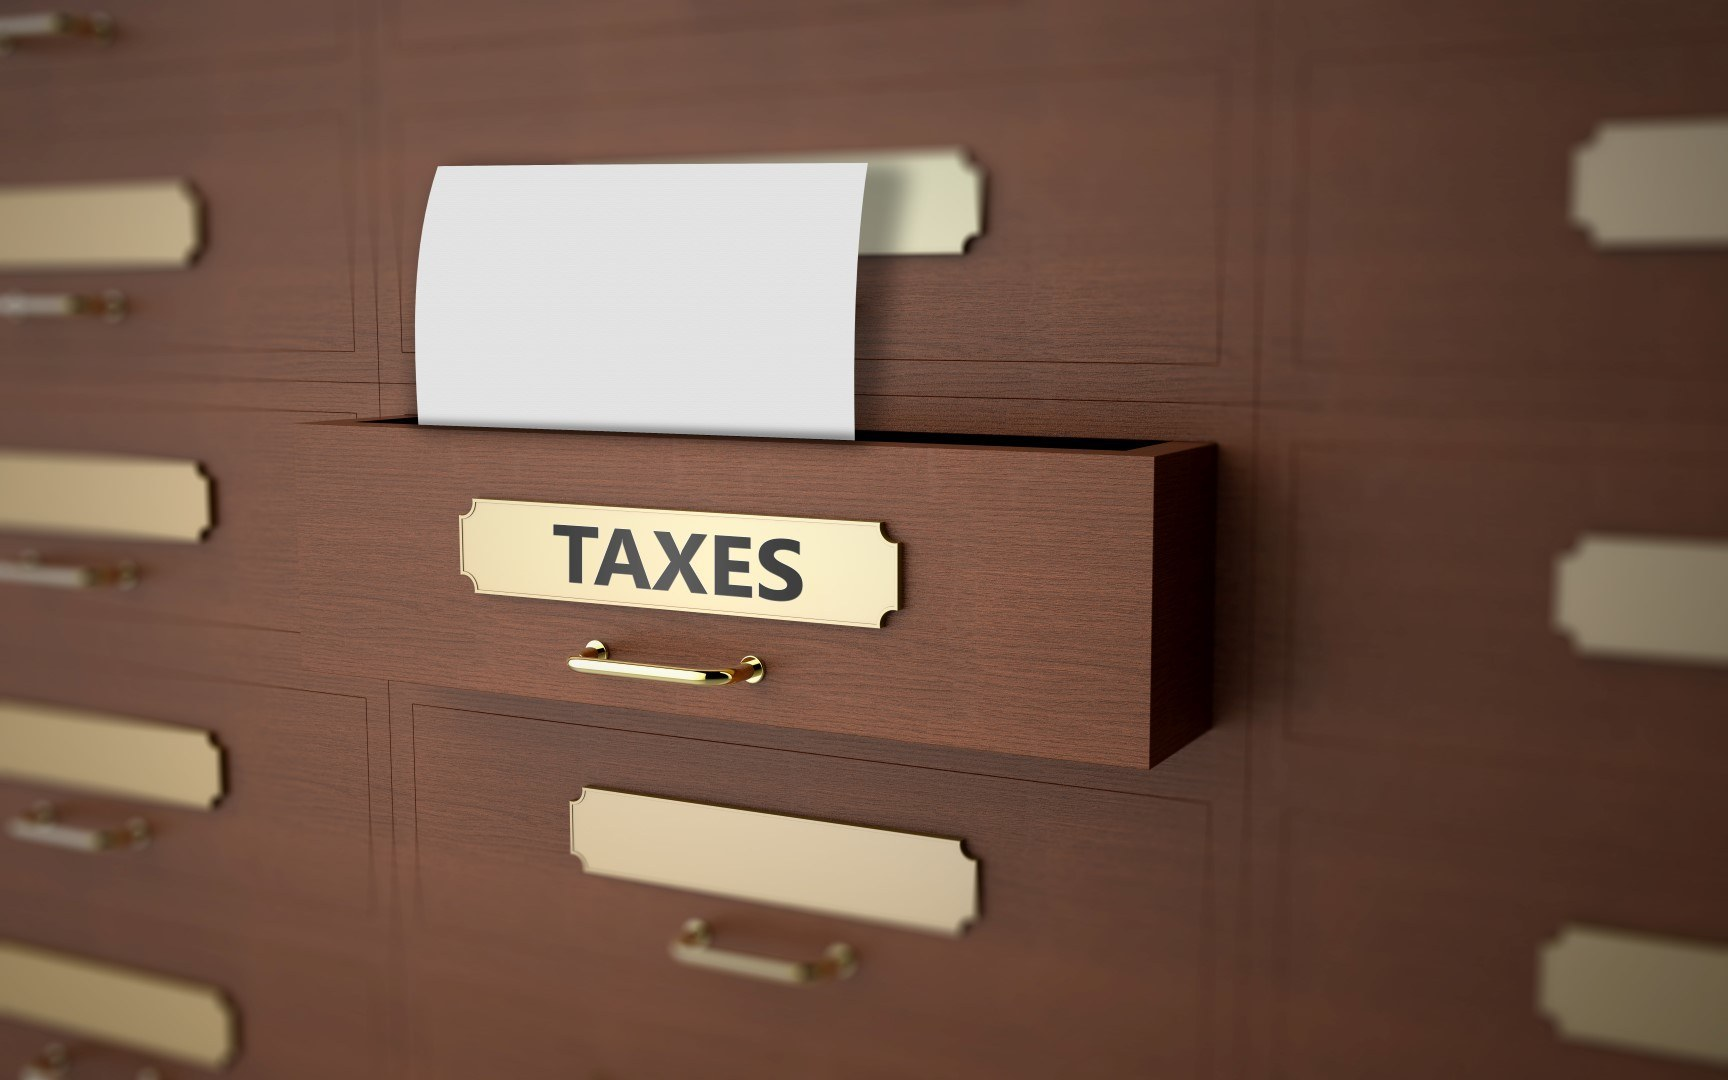 Office drawers with text on the subject of taxes